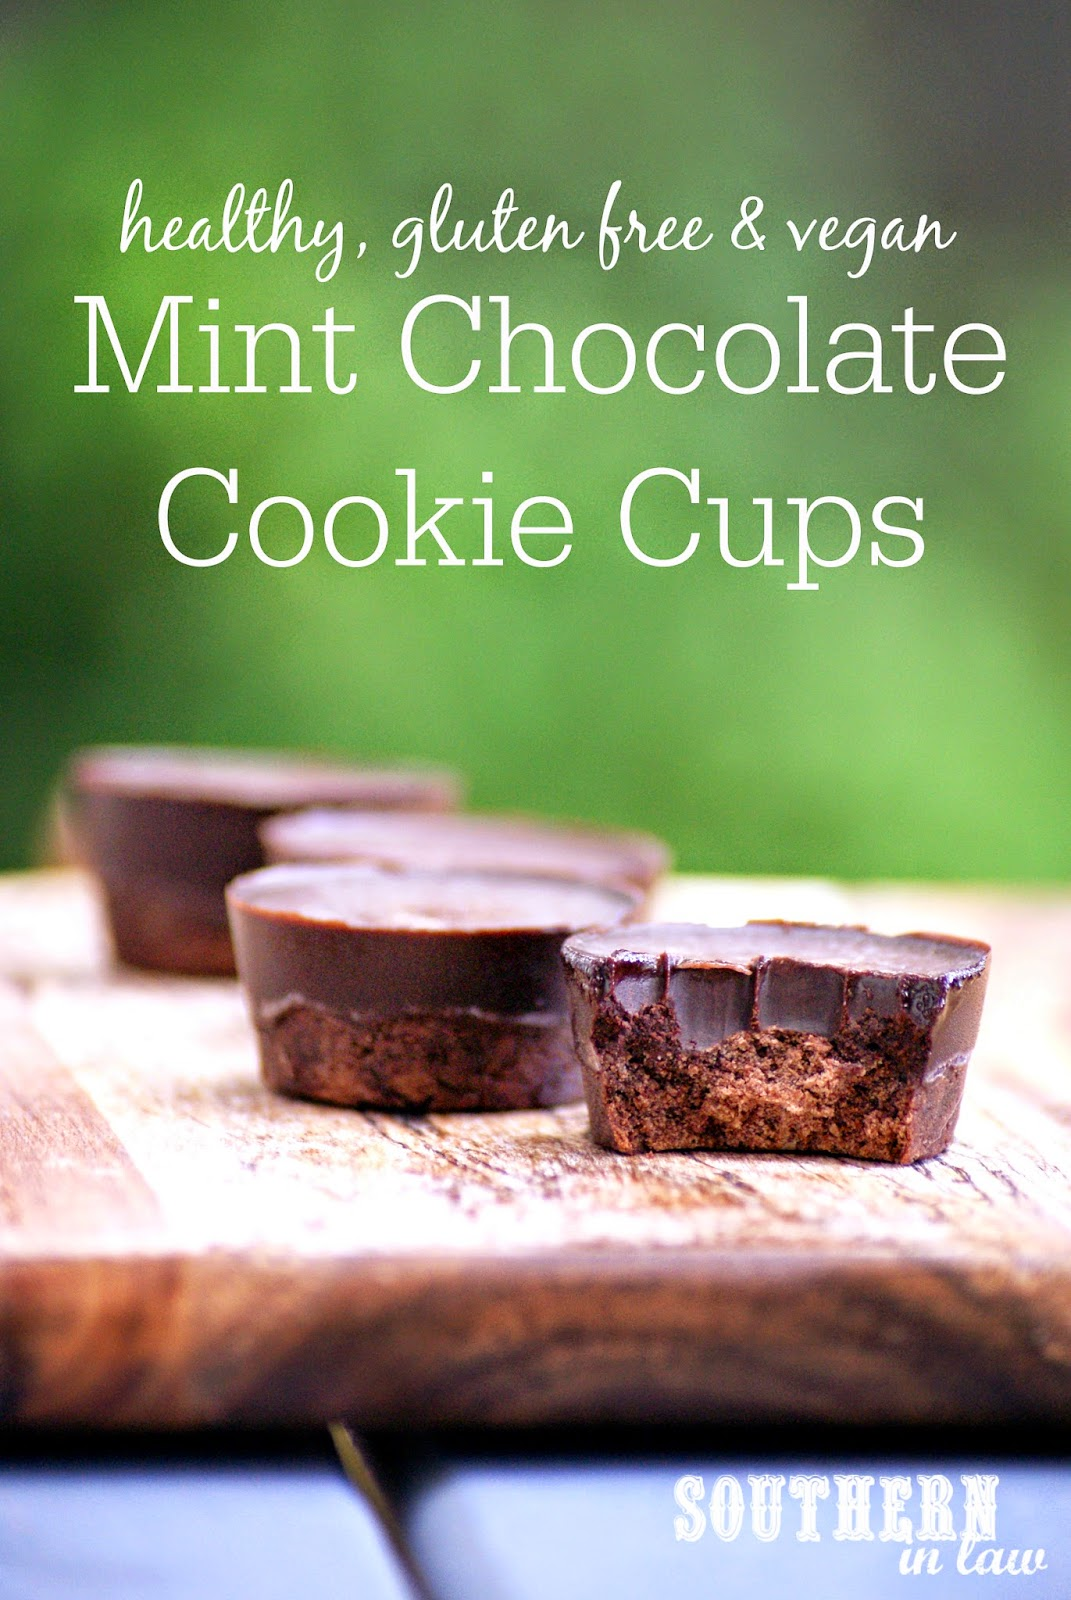 Healthy Mint Chocolate Fudge Cookie Cups Recipe - Healthy Mint Slice Biscuit Recipe - Healthy Thin Mint Cookie Recipe - gluten free, vegan, refined sugar free, dairy free, egg free